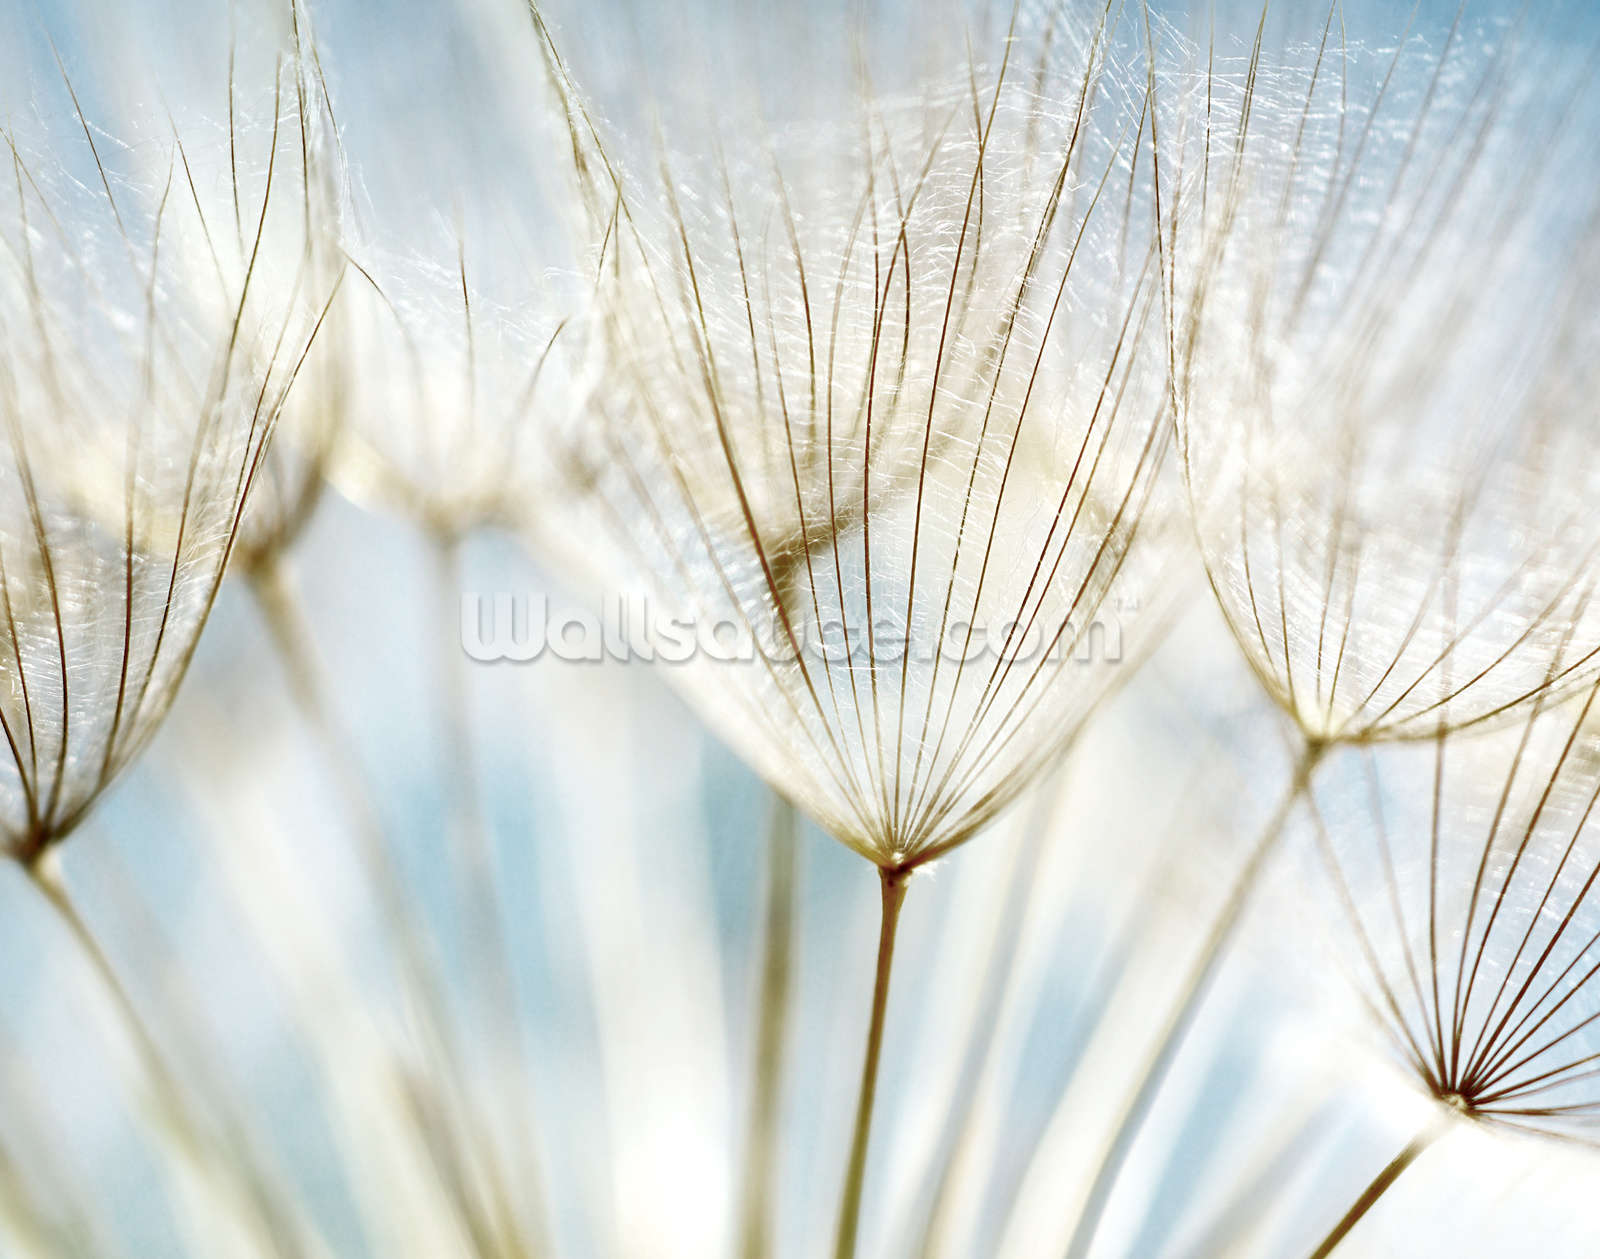 dandelions wallpaper wall mural wallsauce usa dandelions wall mural photo wallpaper